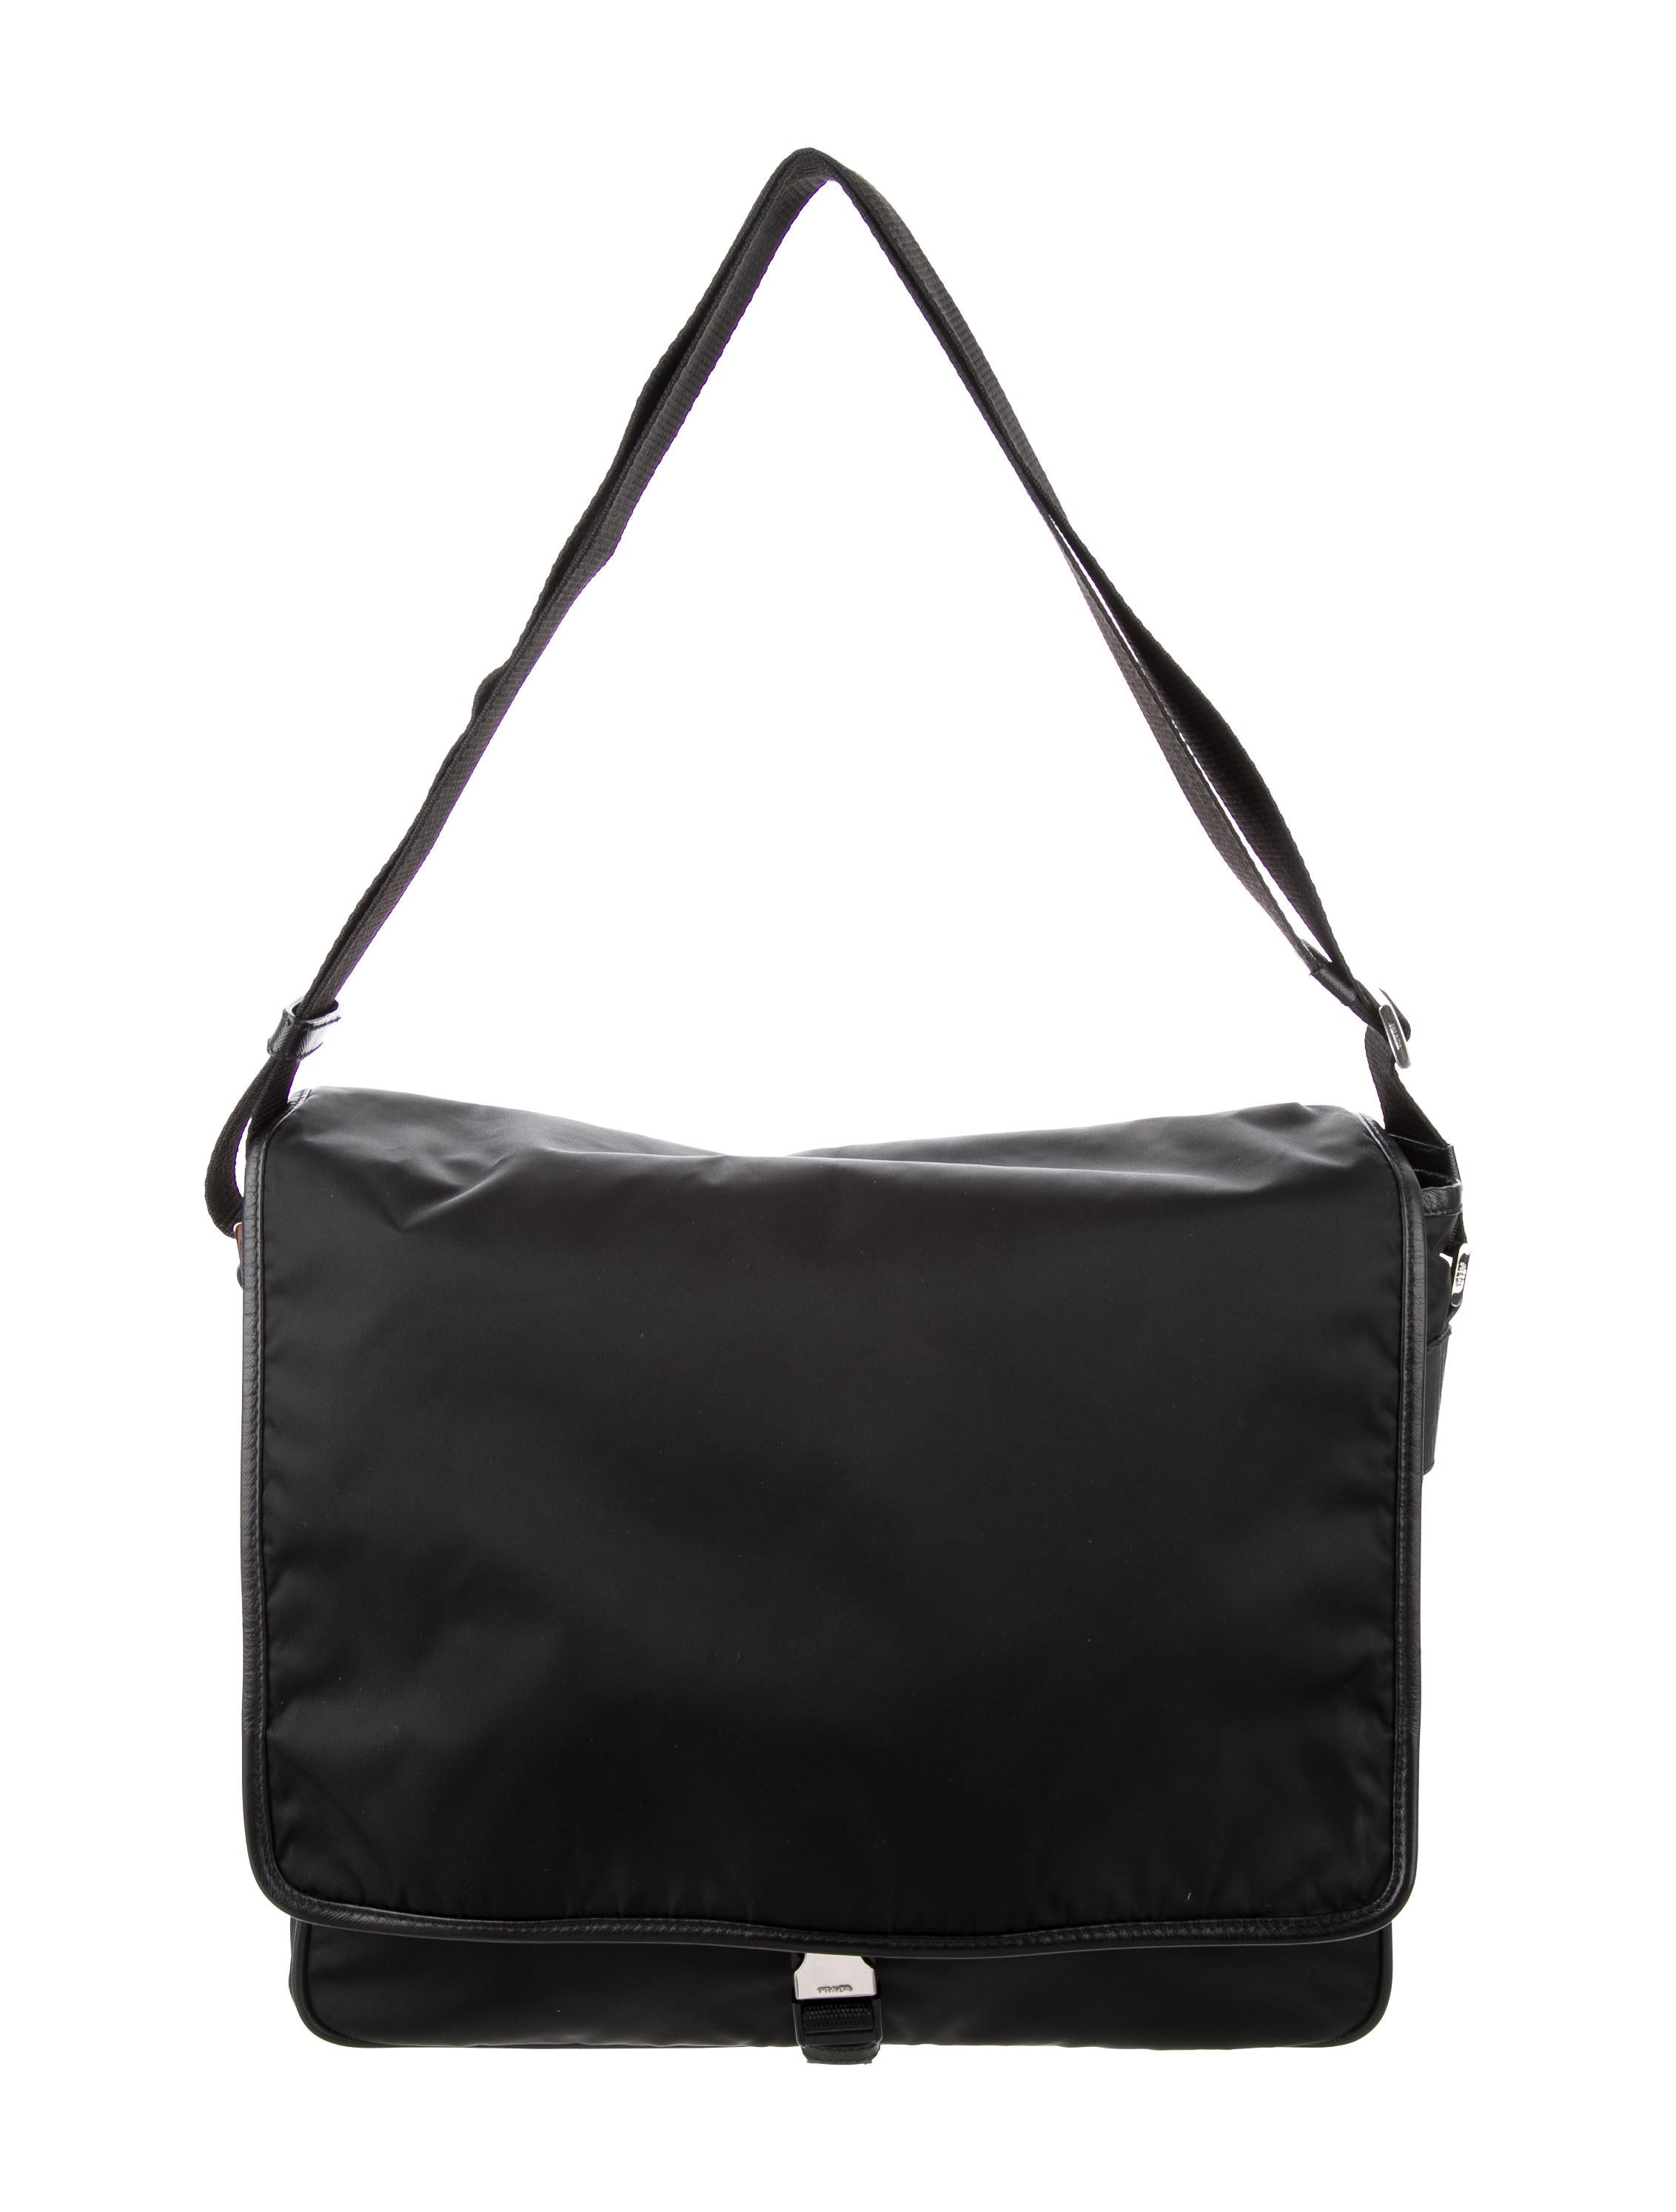 51cf8a80b4dc Prada Leather Messenger Bag | Stanford Center for Opportunity Policy ...